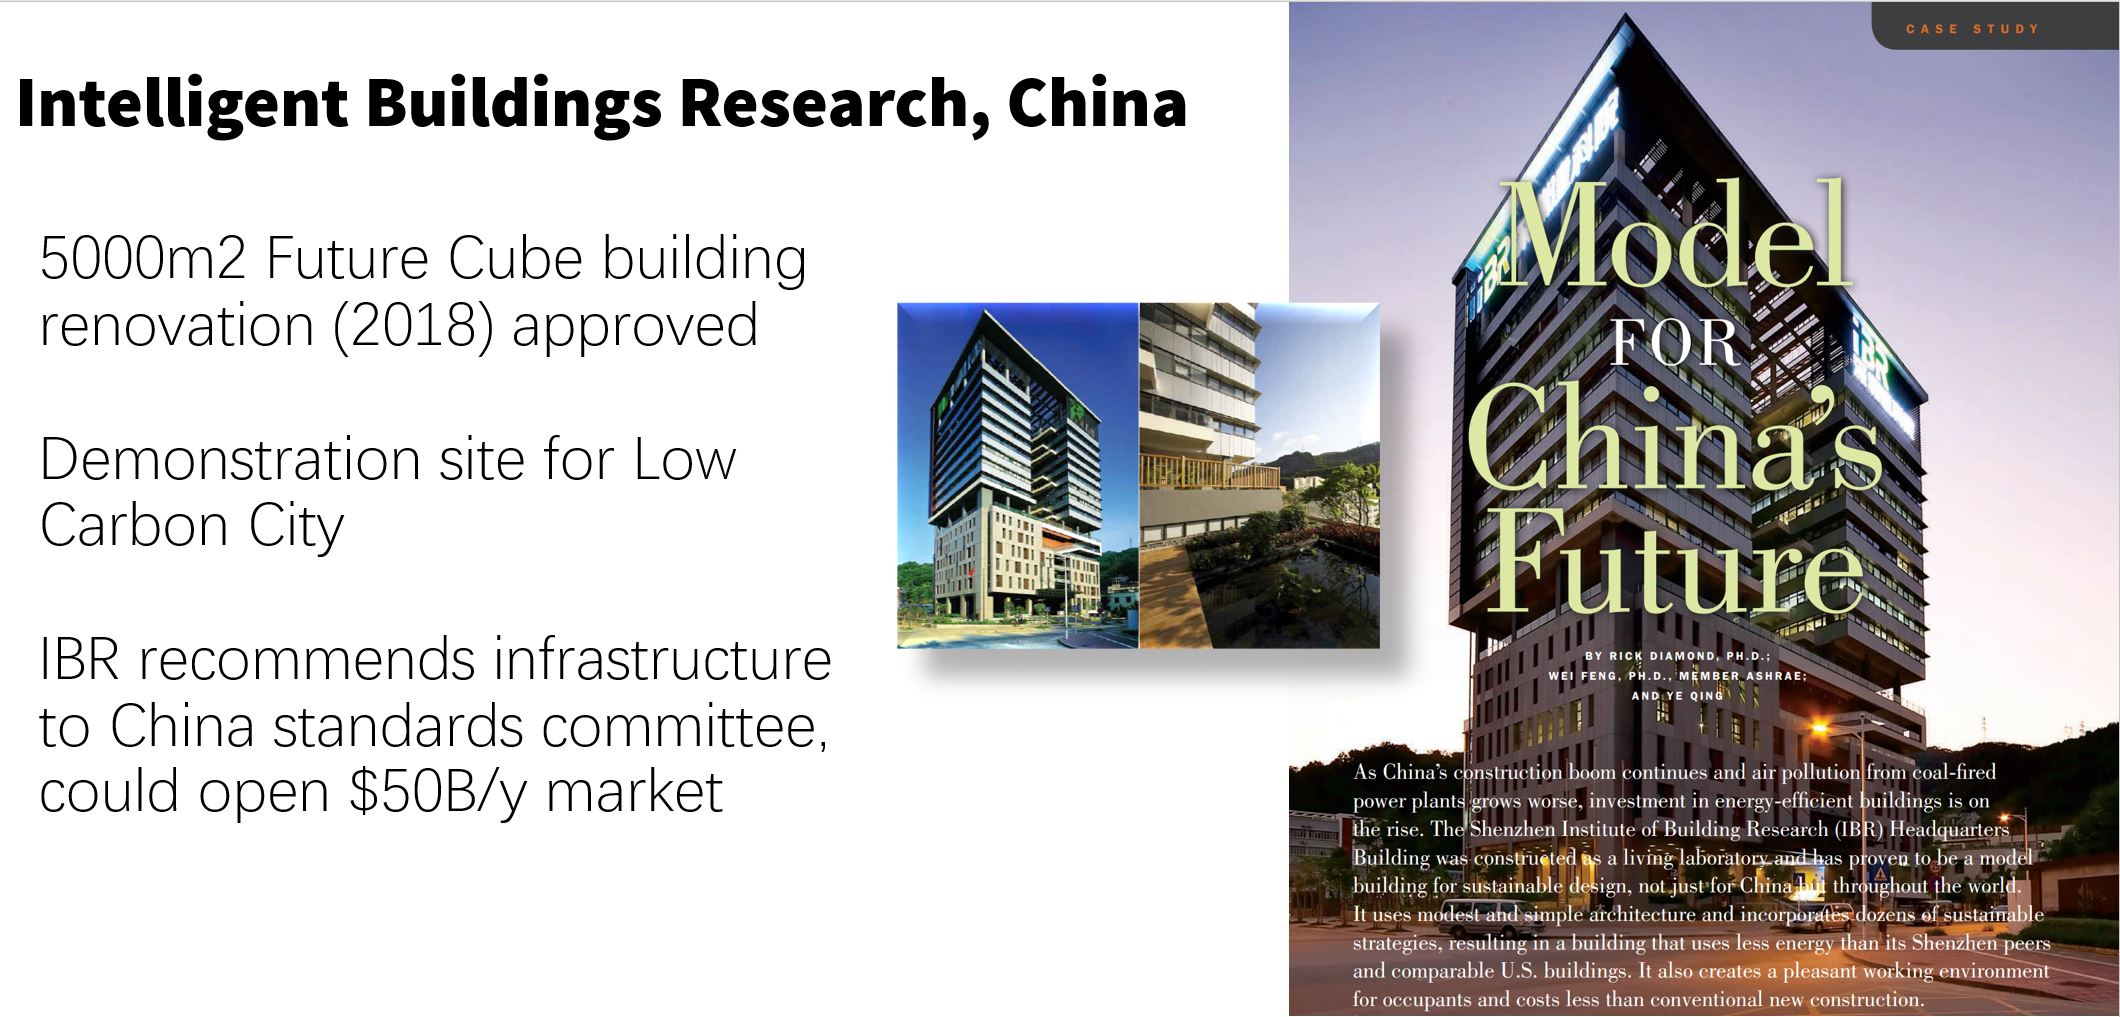 China Low Carbon City demonstration building